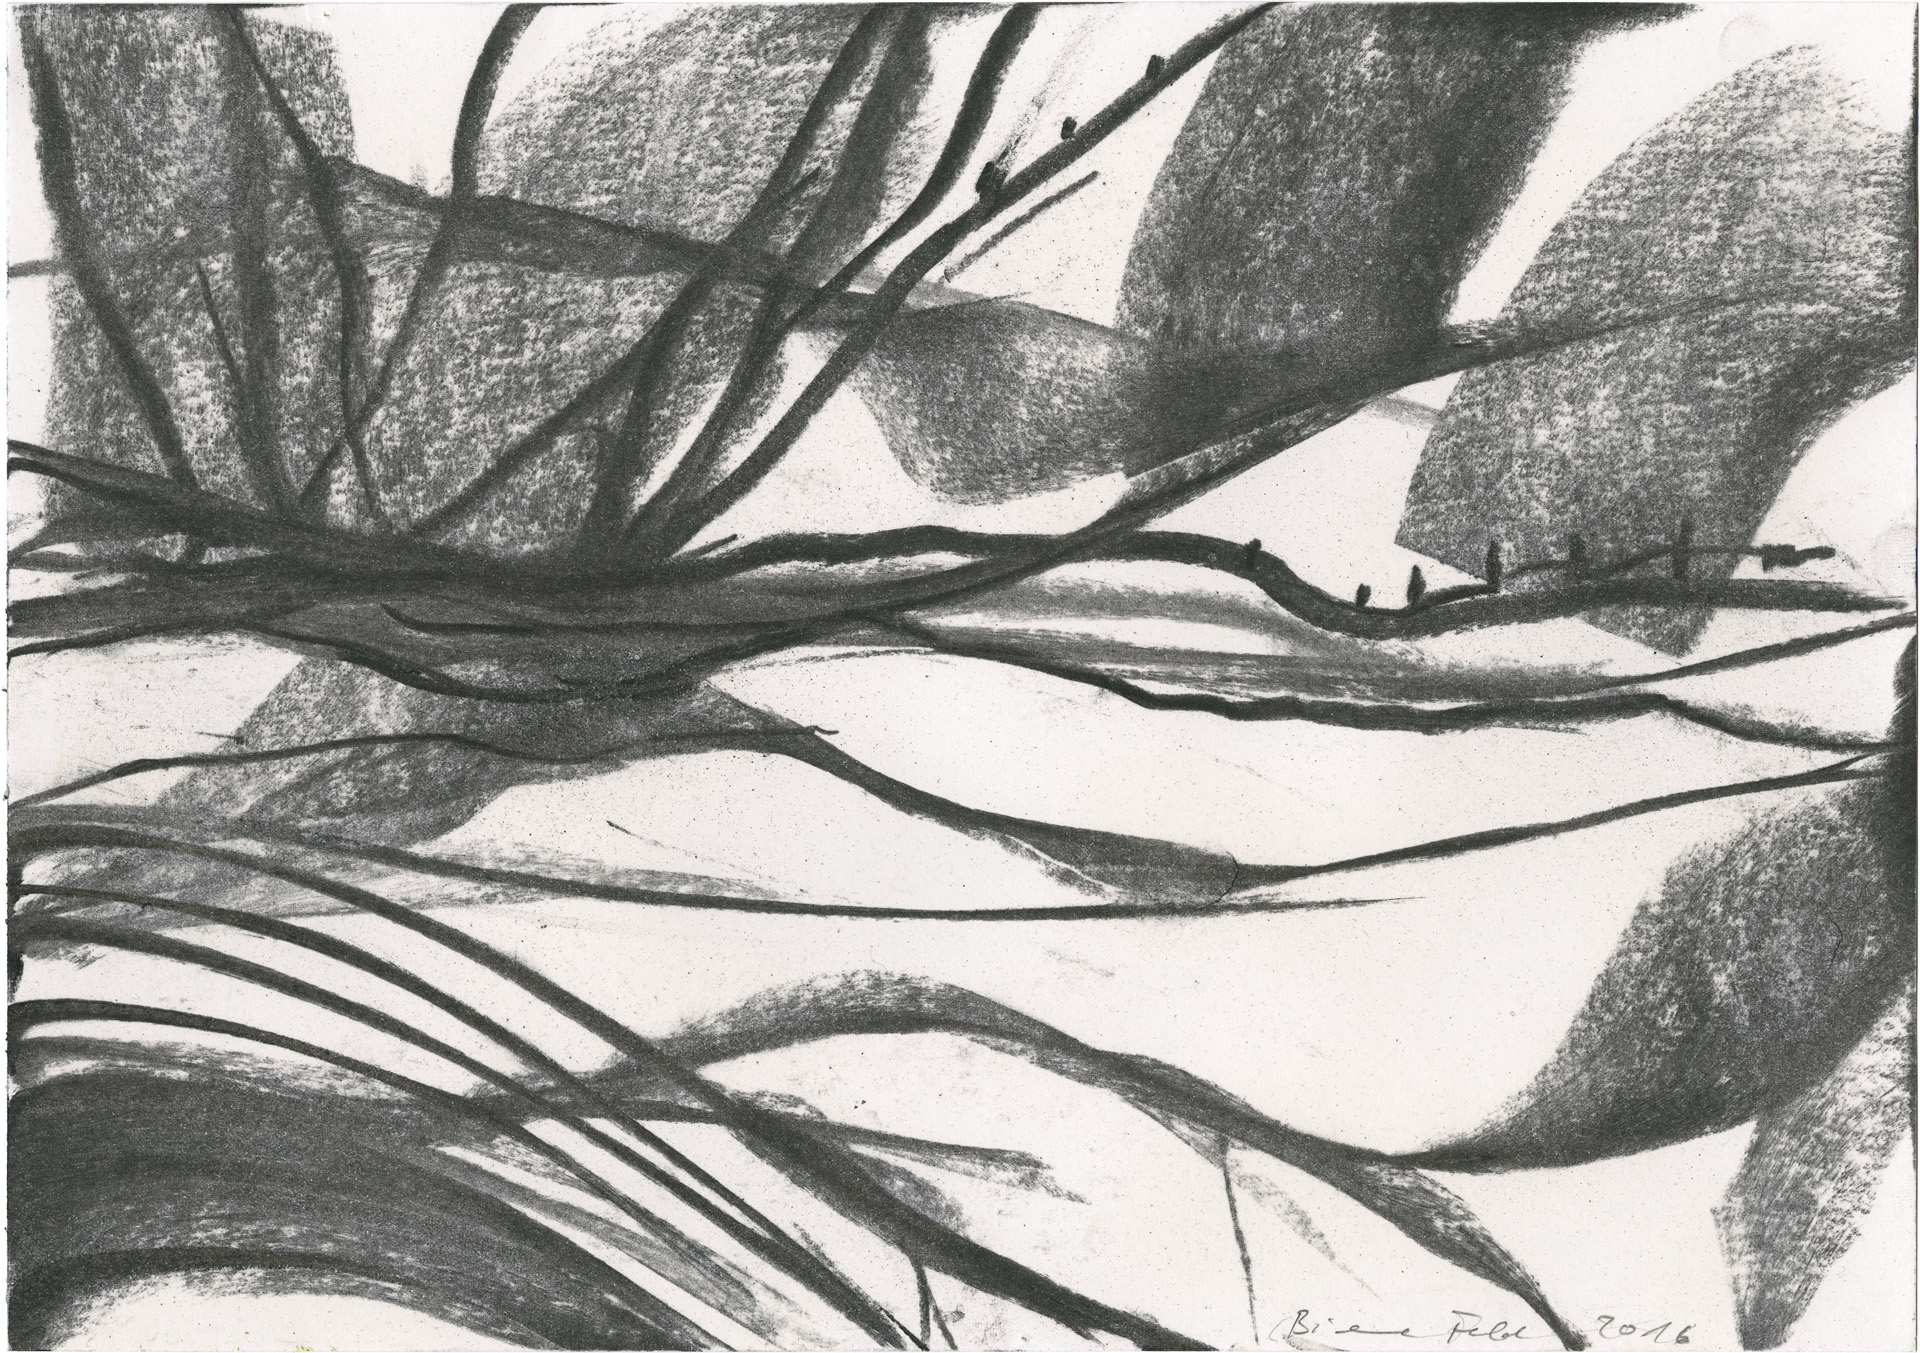 BieneFeld – untitled, 2016,charcoal on paper, 21 x 30 cm